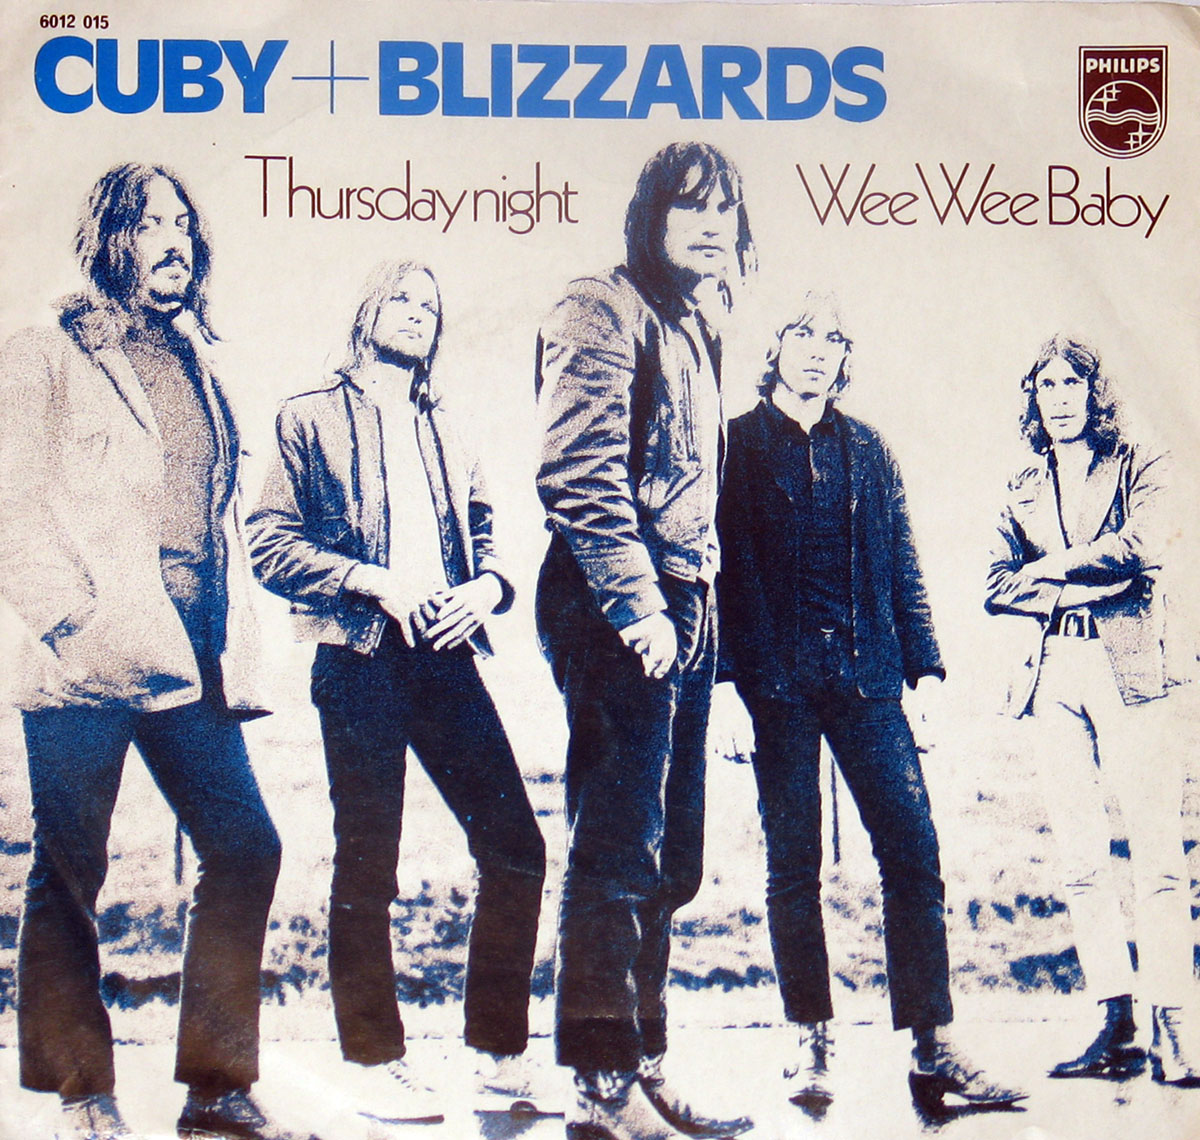 High Resolution Photo CUBY + BLIZZARDS Thursday Night / Wee Wee Baby Vinyl Record